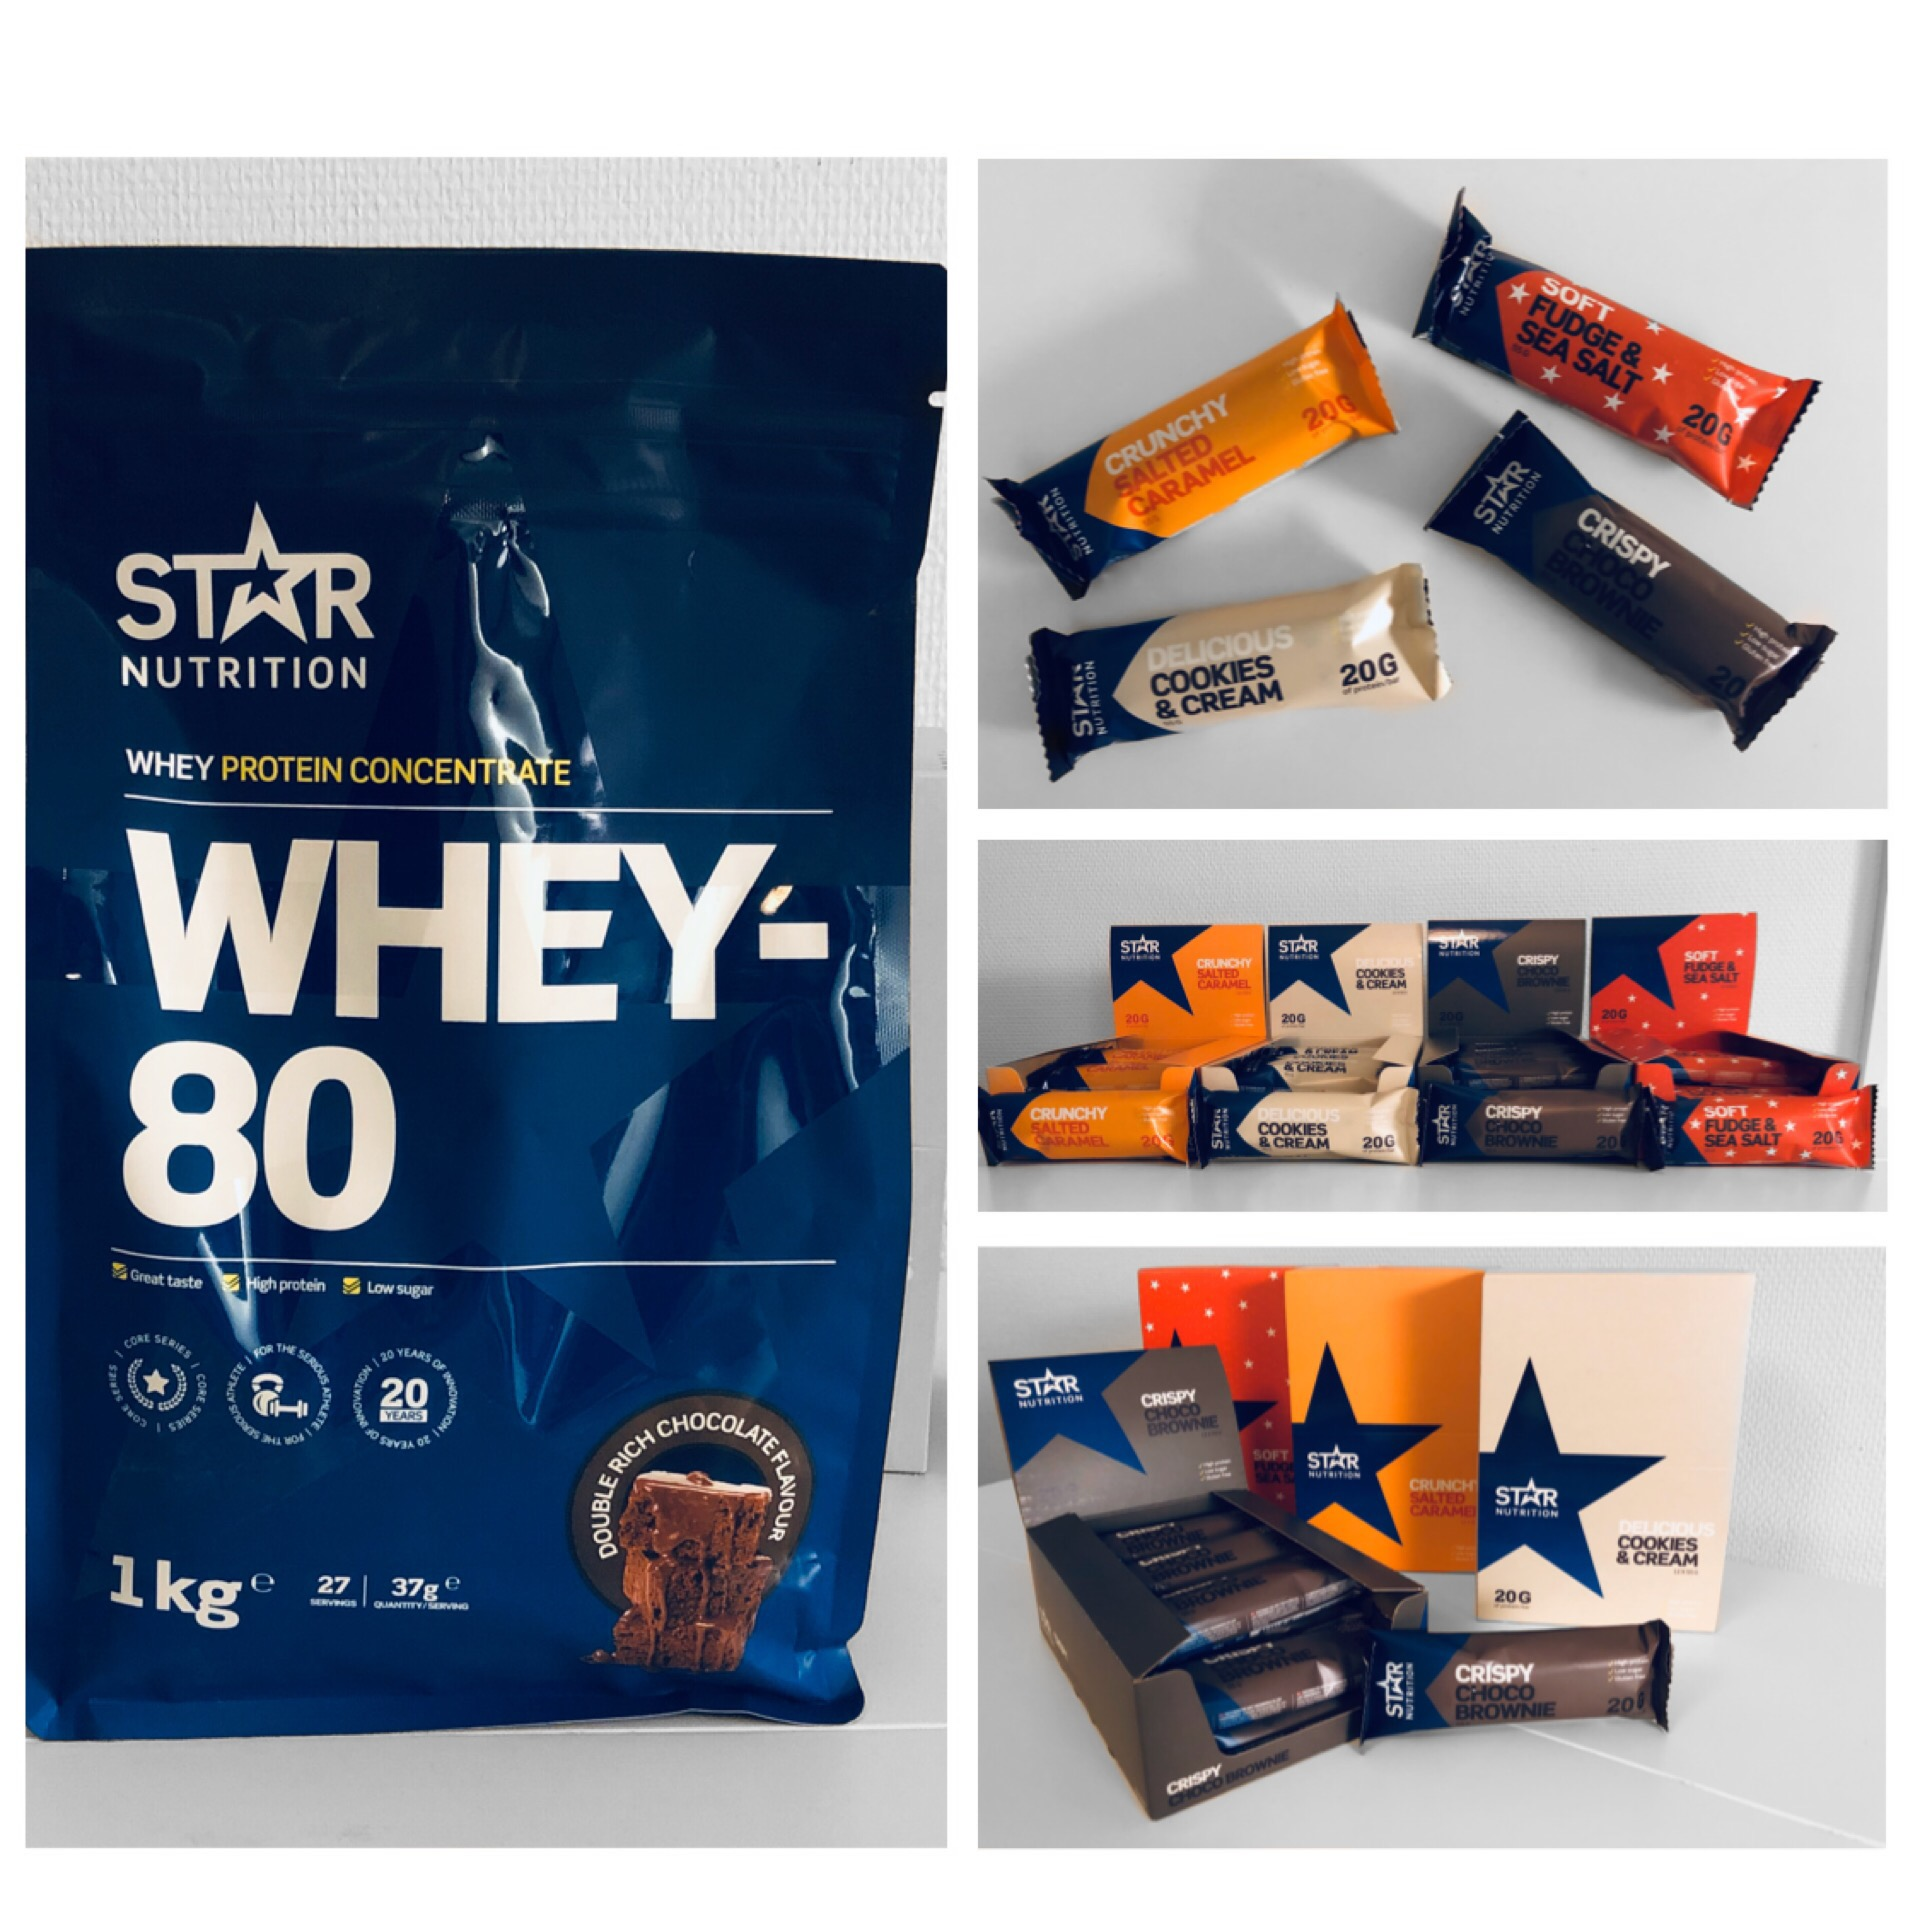 Whey-80 & protein bars